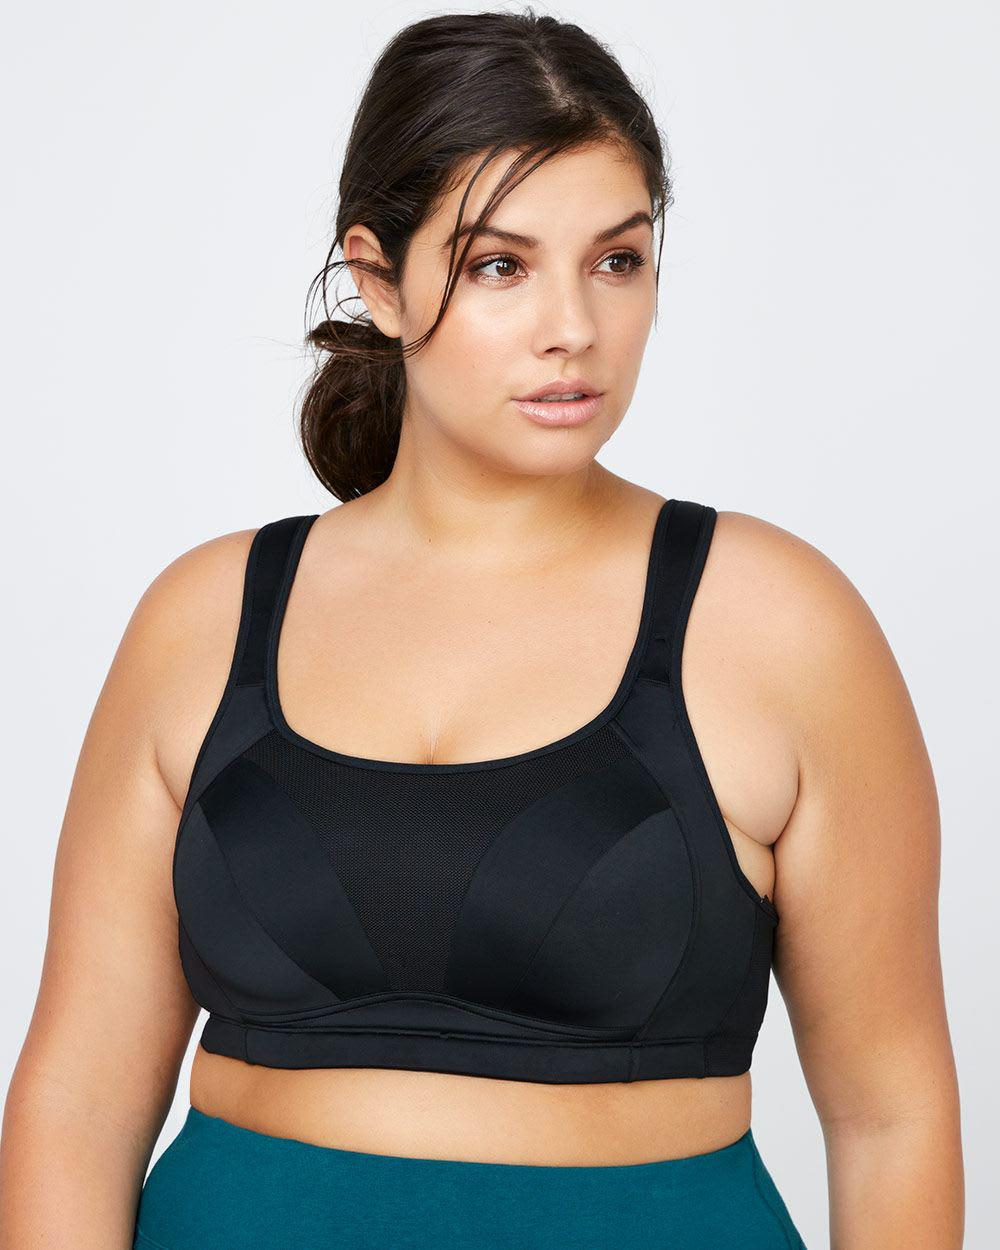 dd35a5d514 Lyst - Addition Elle Plus-size Sports Bra - Activezone in Black